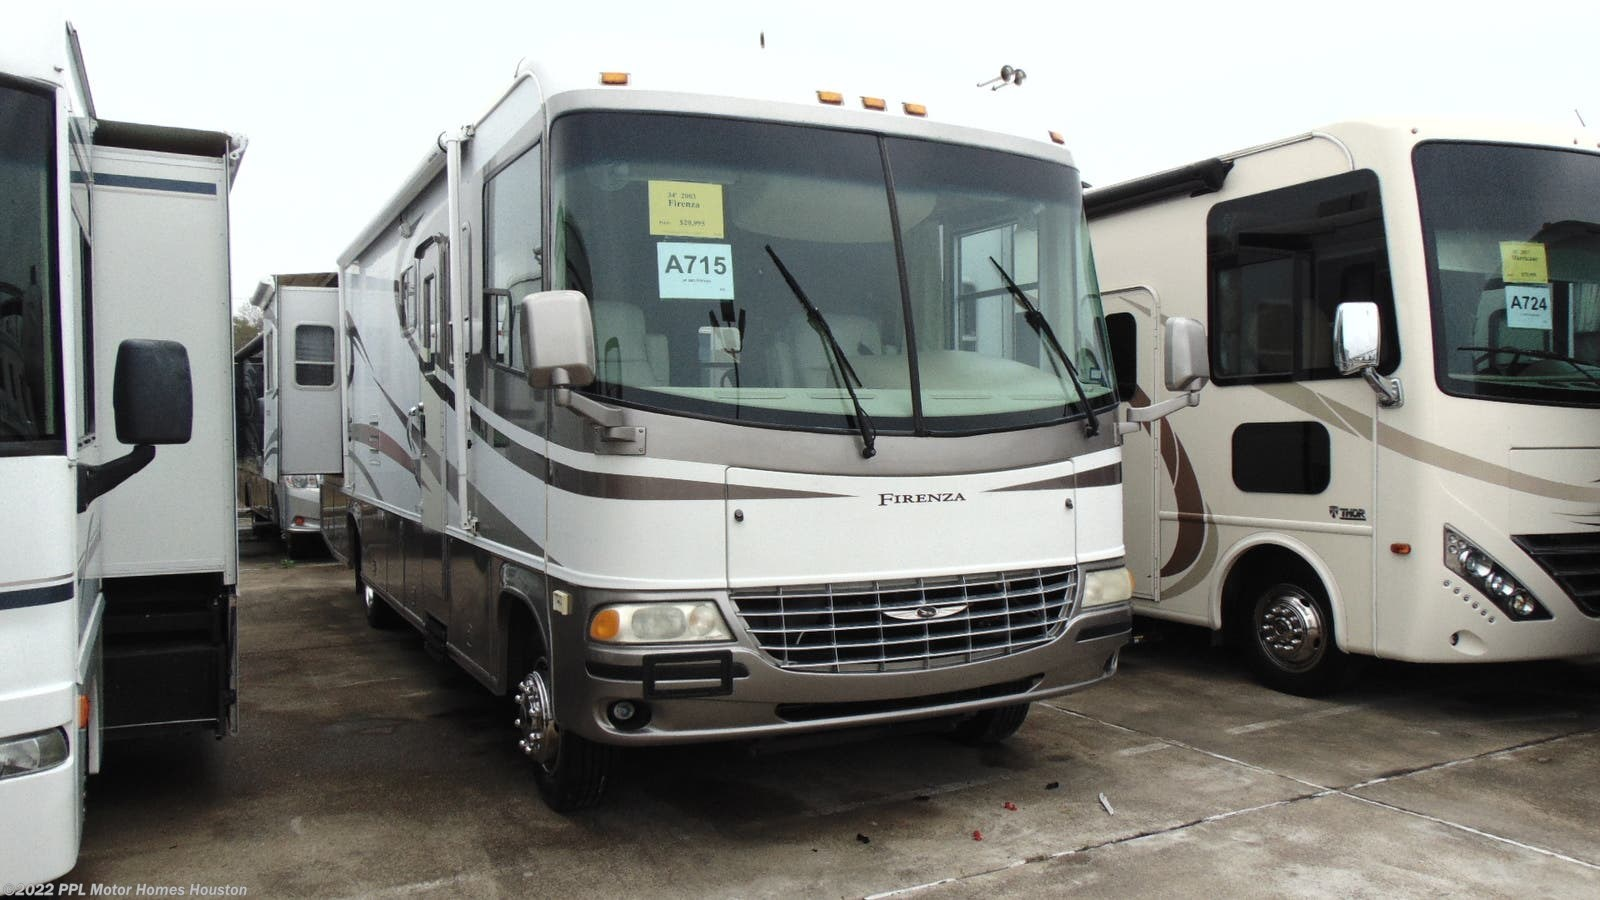 Lp Gas Cooktops For Rv On Sale Now Ppl Motor Homes >> 2003 Jayco Rv Firenza 33e For Sale In Houston Tx 77074 A715